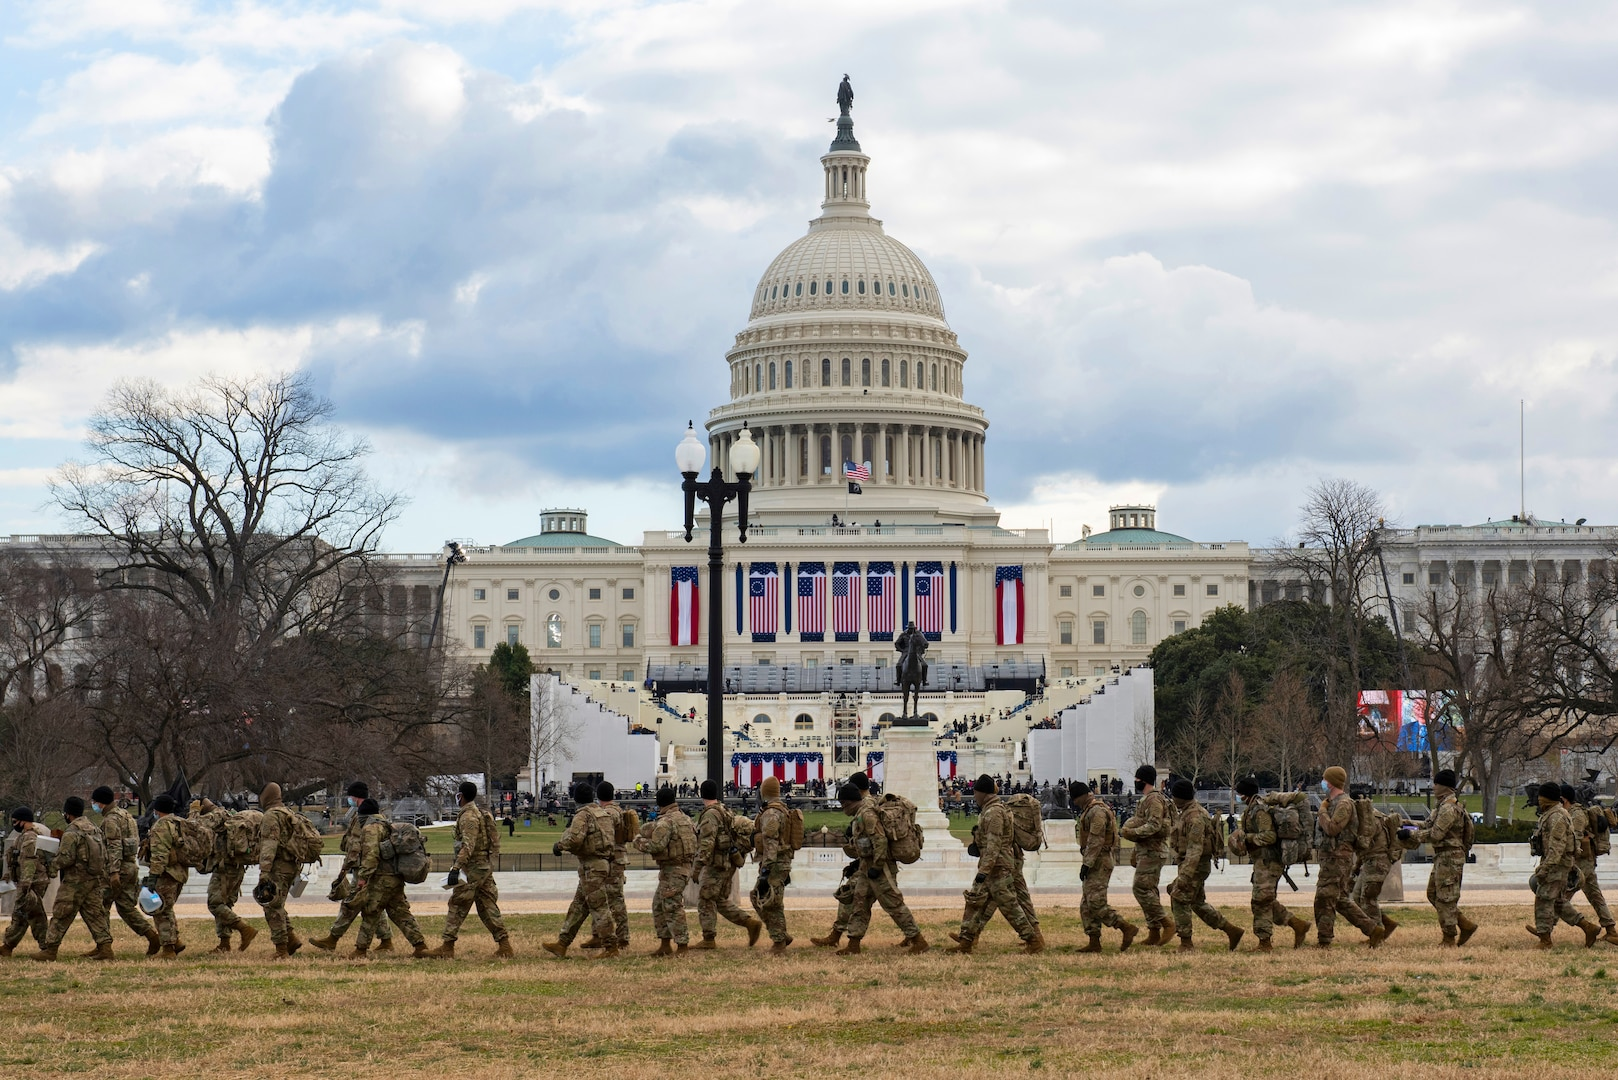 National Guard Soldiers provide security outside the U.S. Capitol during the 59th Presidential Inauguration Jan. 20, as part of the National Guard's Capitol Response security mission.